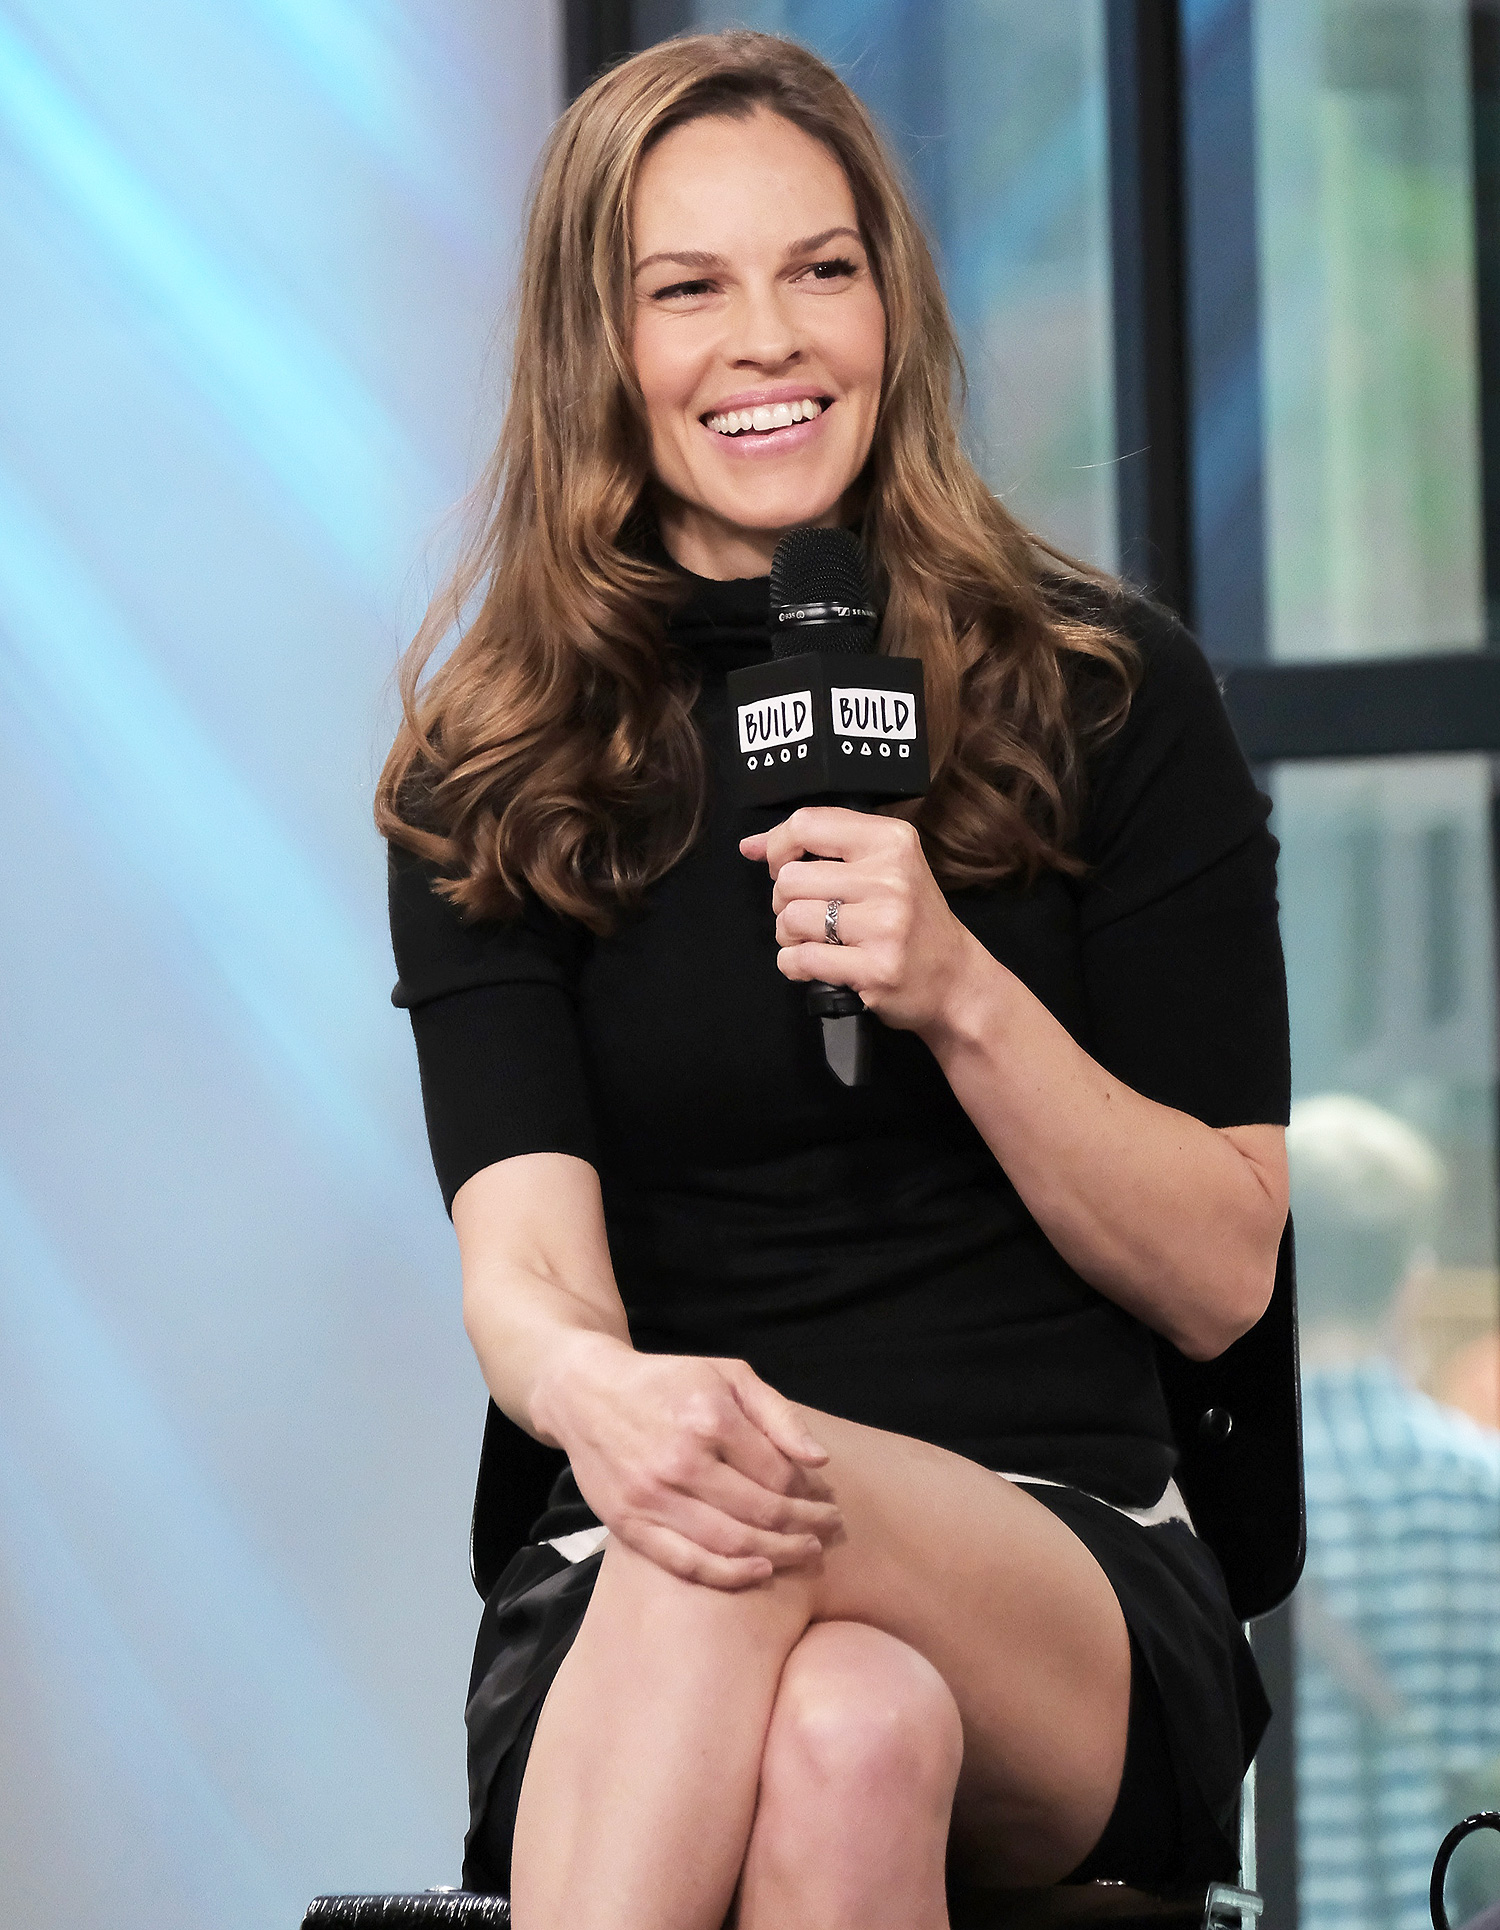 Build Presents Hilary Swank Discussing Her New Fashion Brand, Mission Statement